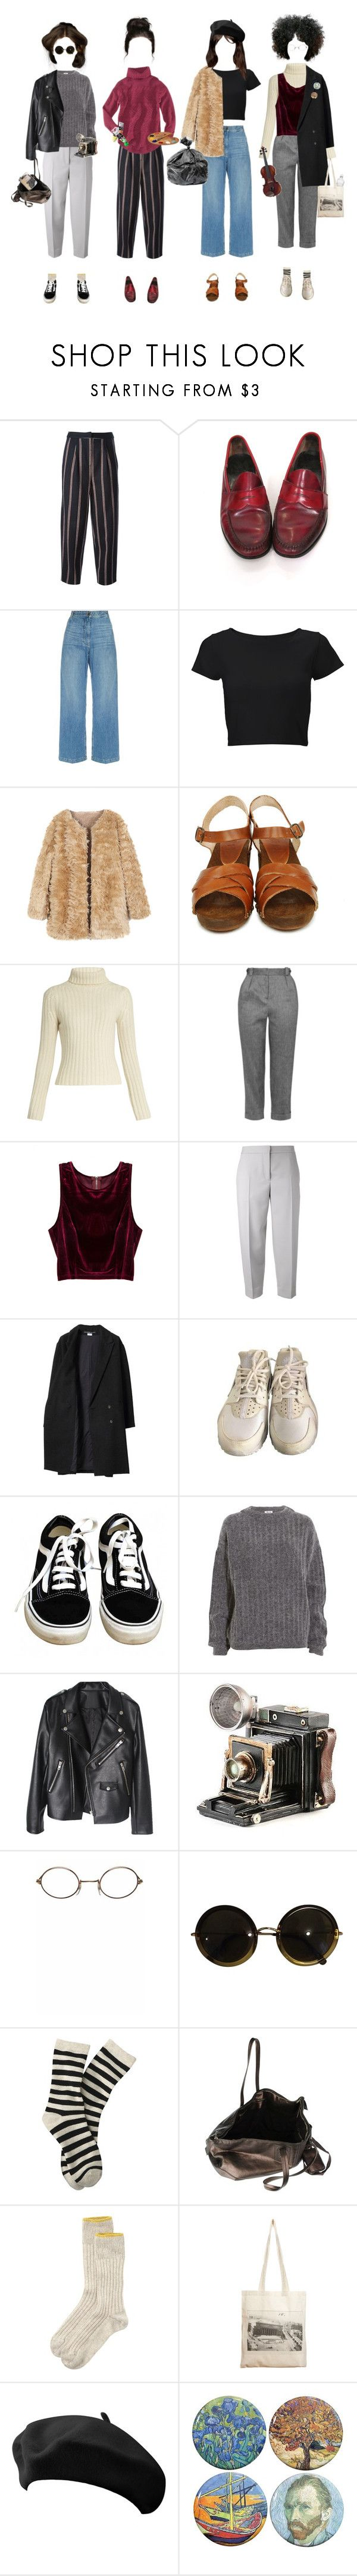 """""""We Are All Artists"""" by silentmoonchild ❤ liked on Polyvore featuring Elizabeth and James, H&M, Rachel Comey, Lipsy, BOSABO, Ryan Roche, Topshop, Maison Margiela, Les Prairies de Paris and NIKE"""